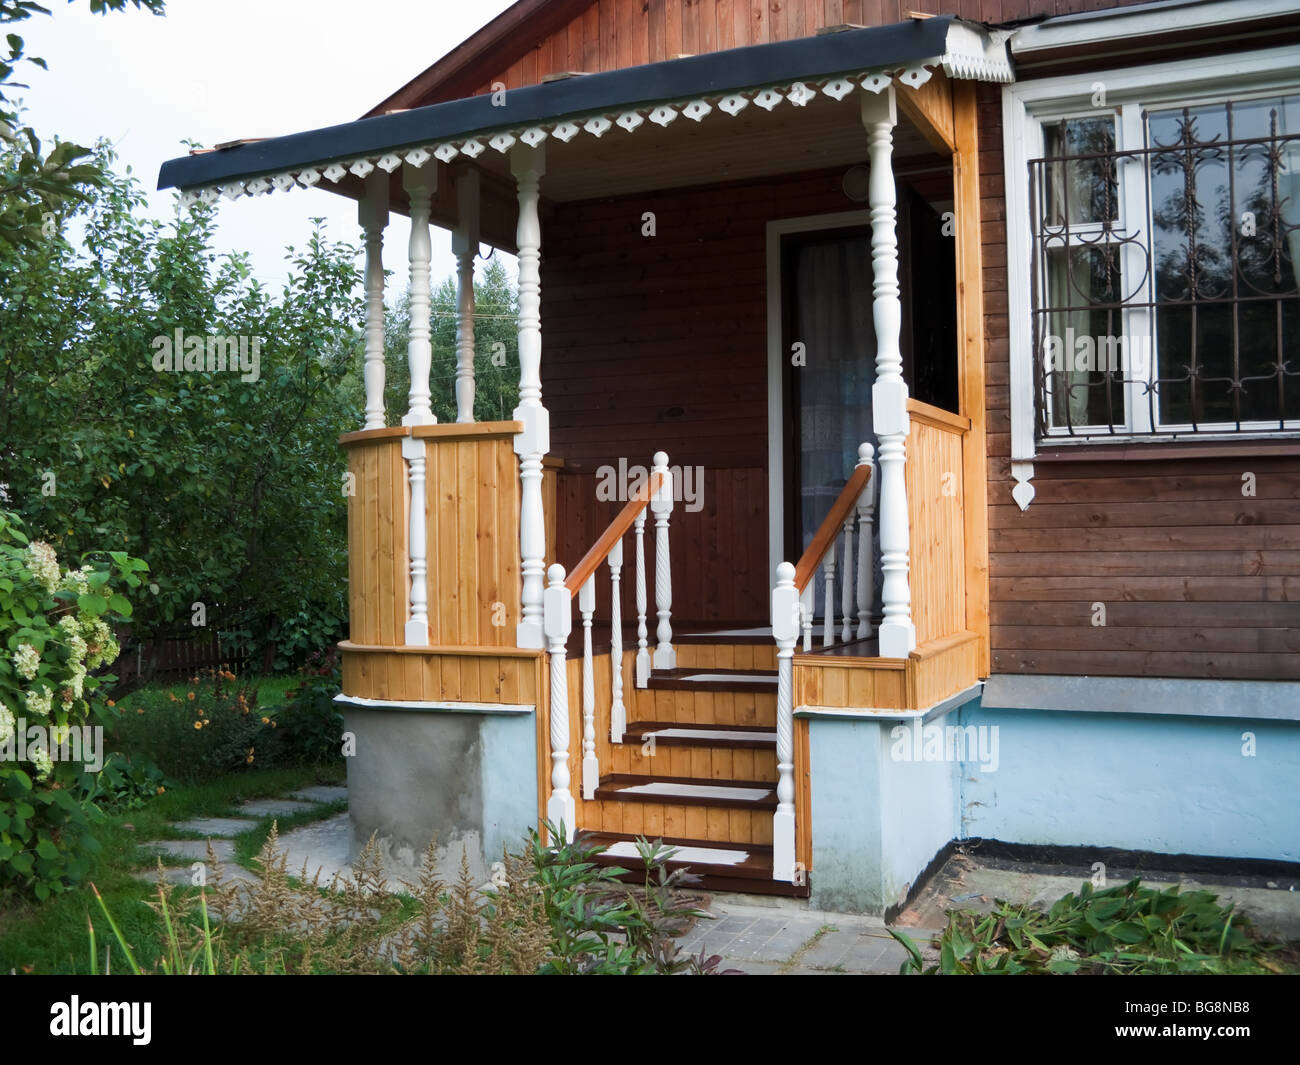 The pictures shows a new wooden porch in a country house, surrounded by green trees and bushes - Stock Image